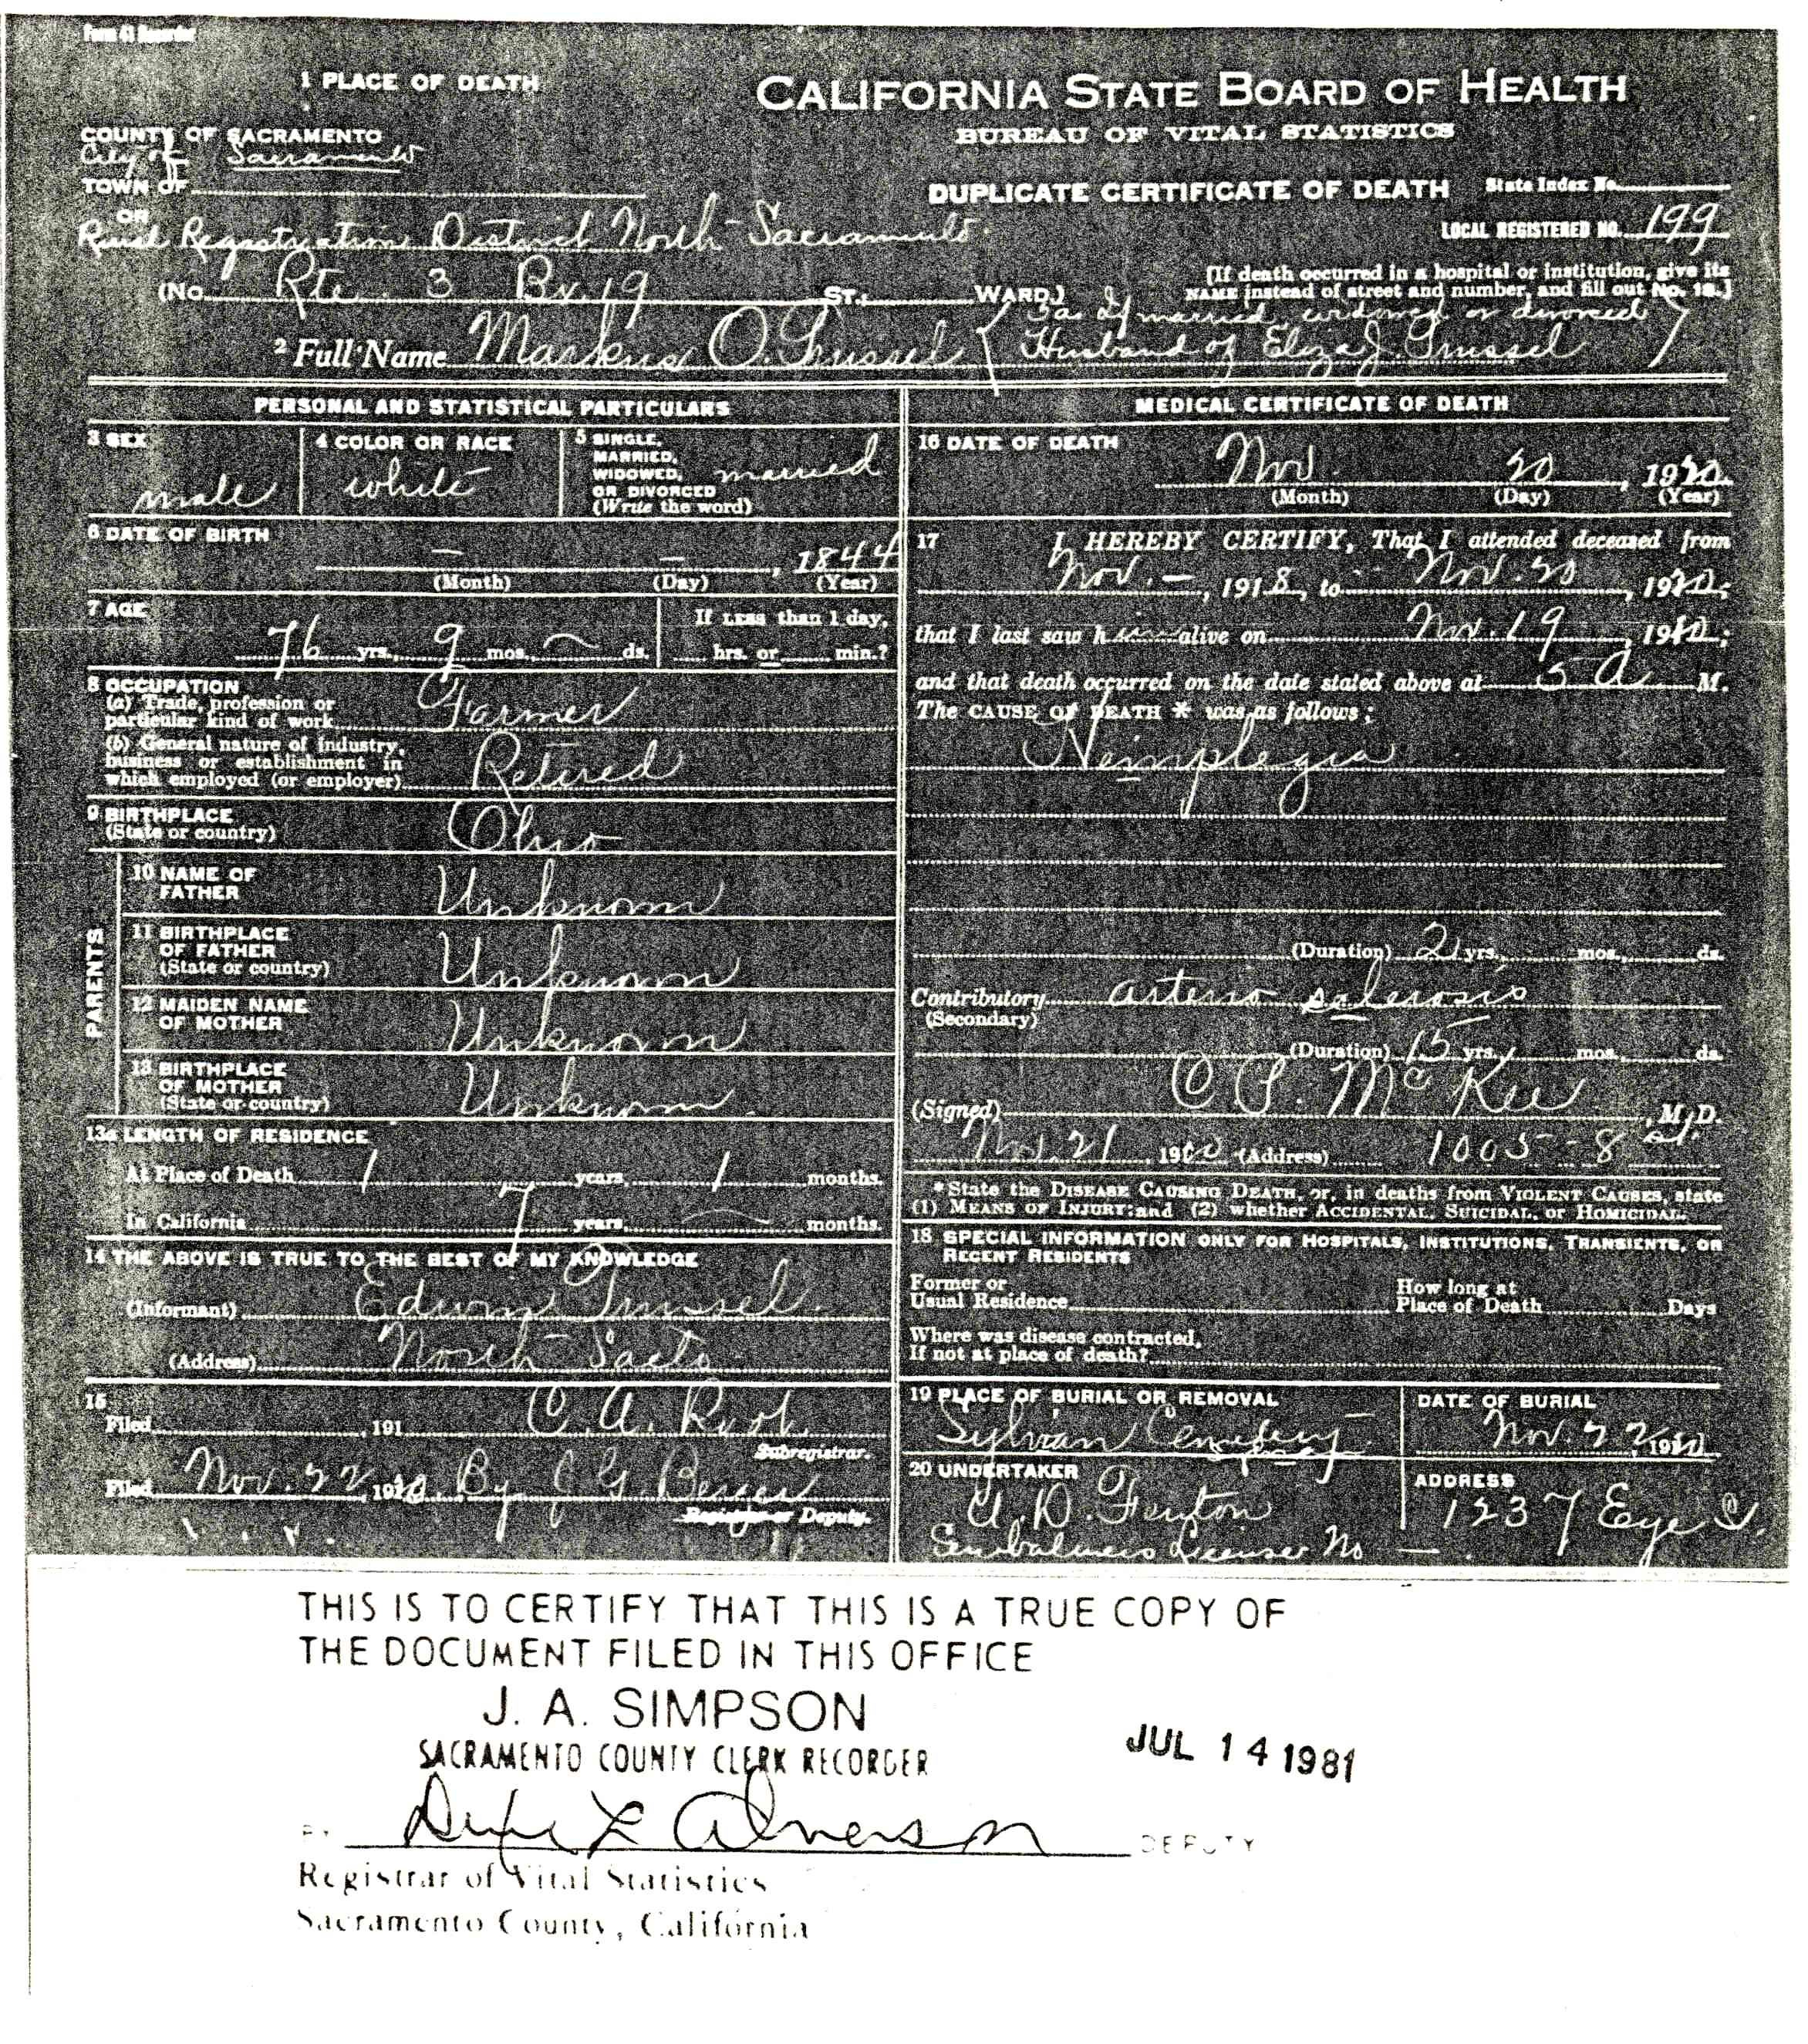 Copy of death certificate for marcus o trussel 20 november 1920 copy of death certificate for marcus o trussel 20 november 1920 rural registration 1betcityfo Choice Image